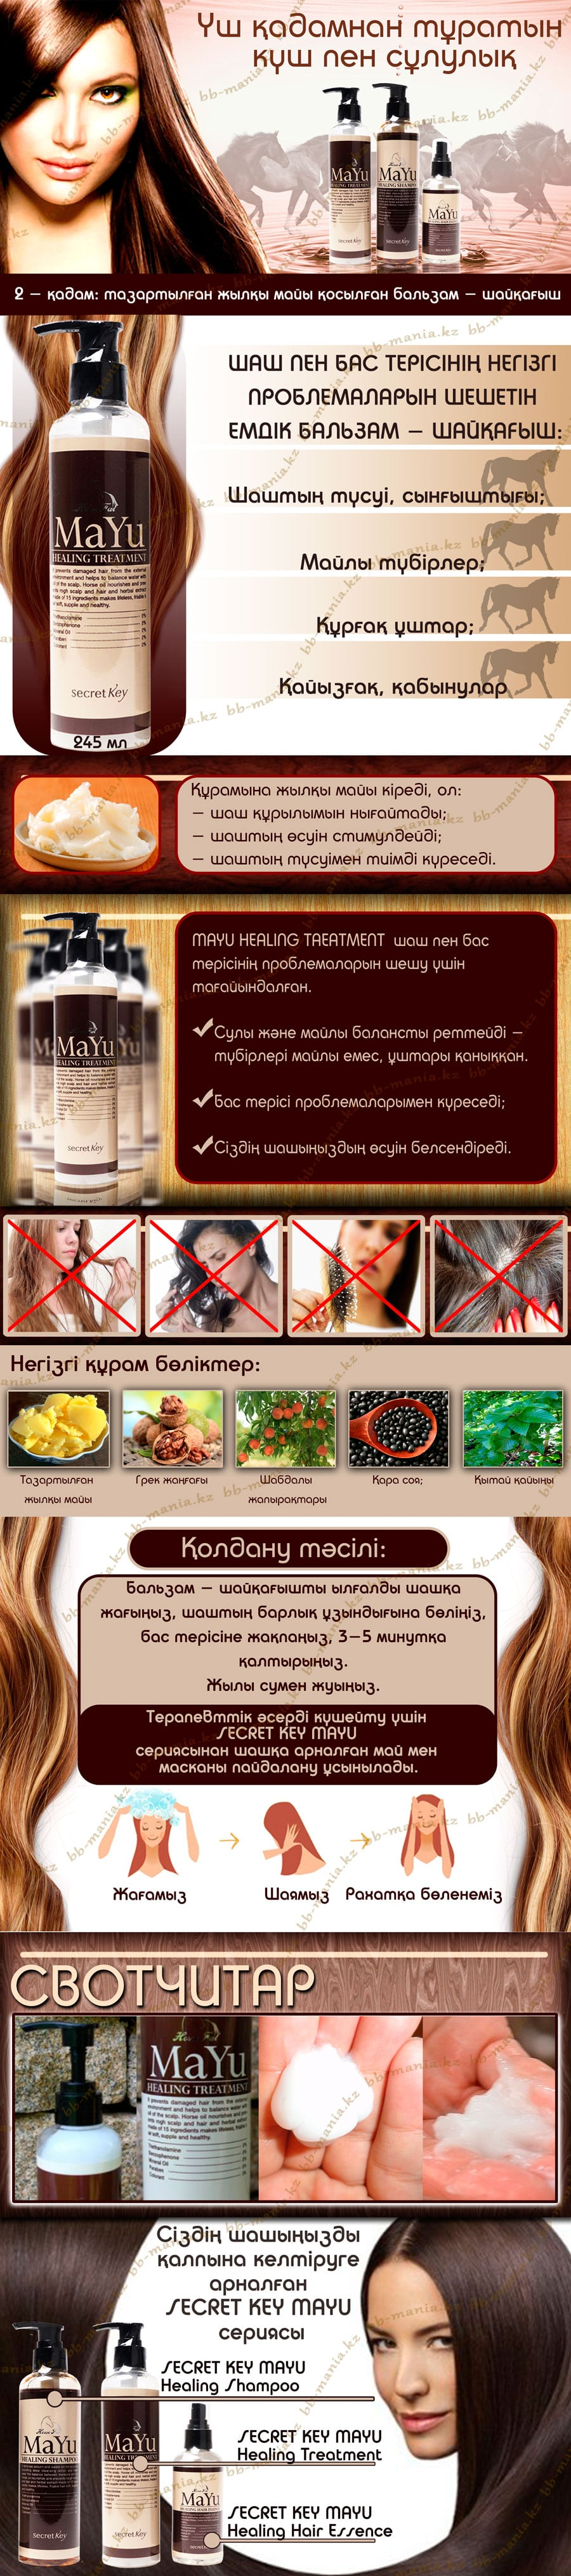 SECRET-KEY-MAYU-Healing-Treatment-кз-min